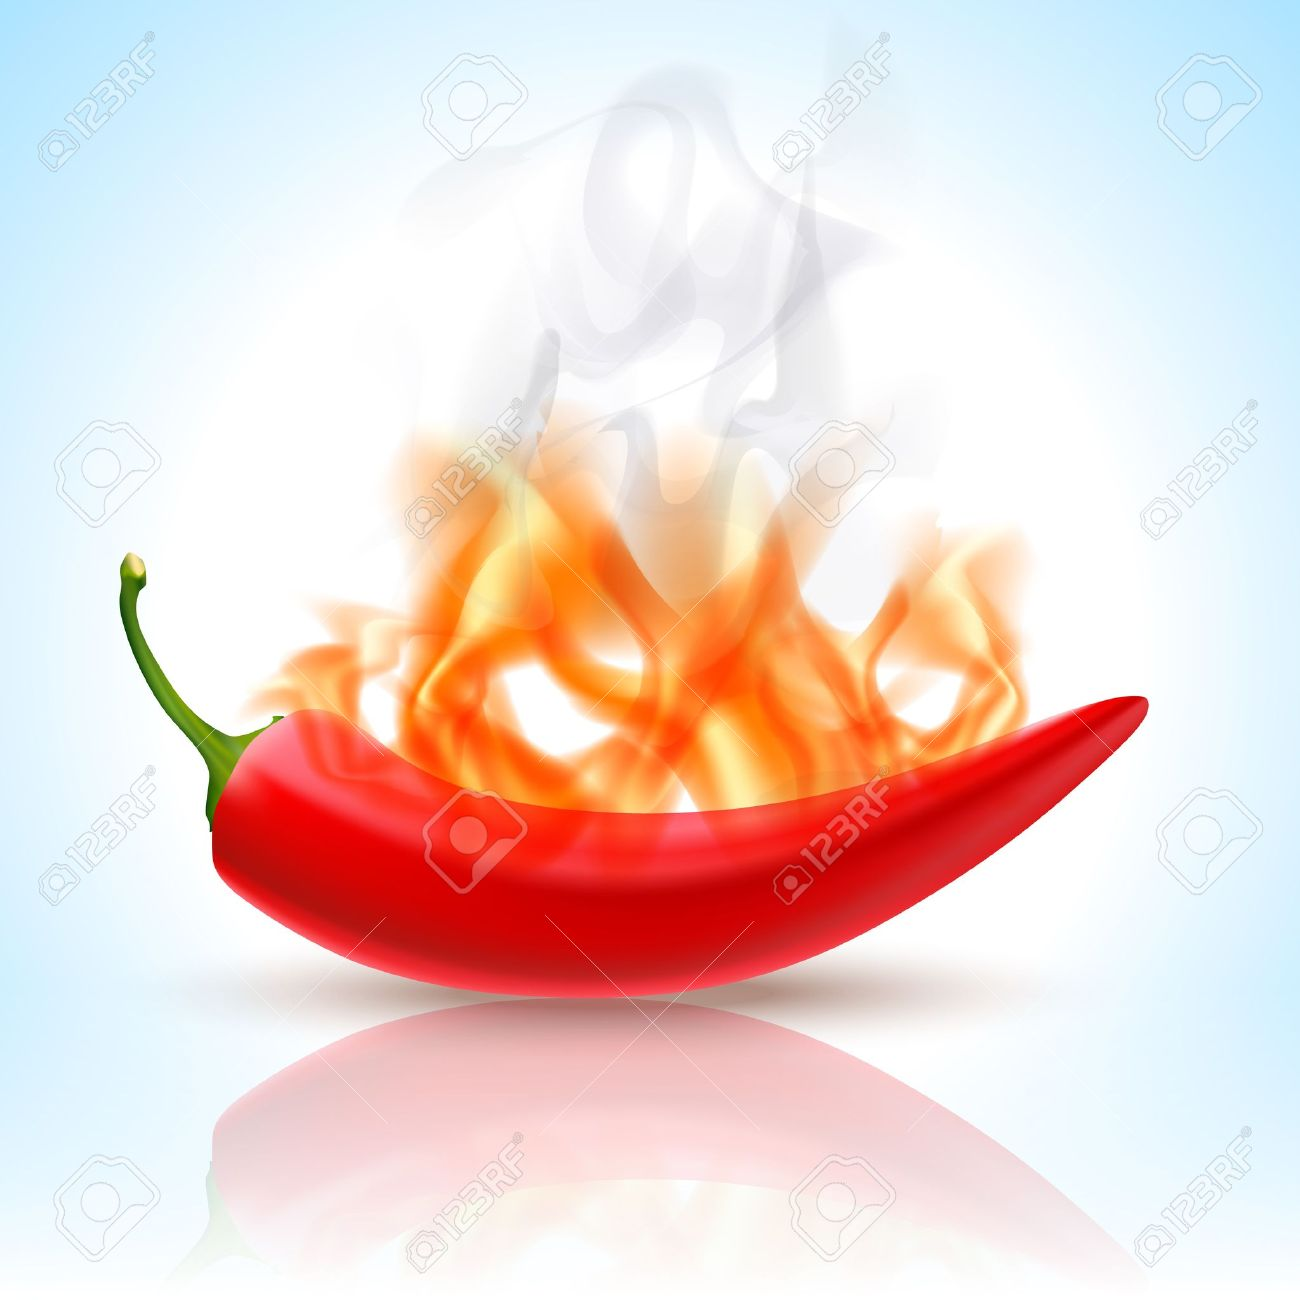 913192f55989 Burning Red Chili Pepper Stock Vector - 12987609